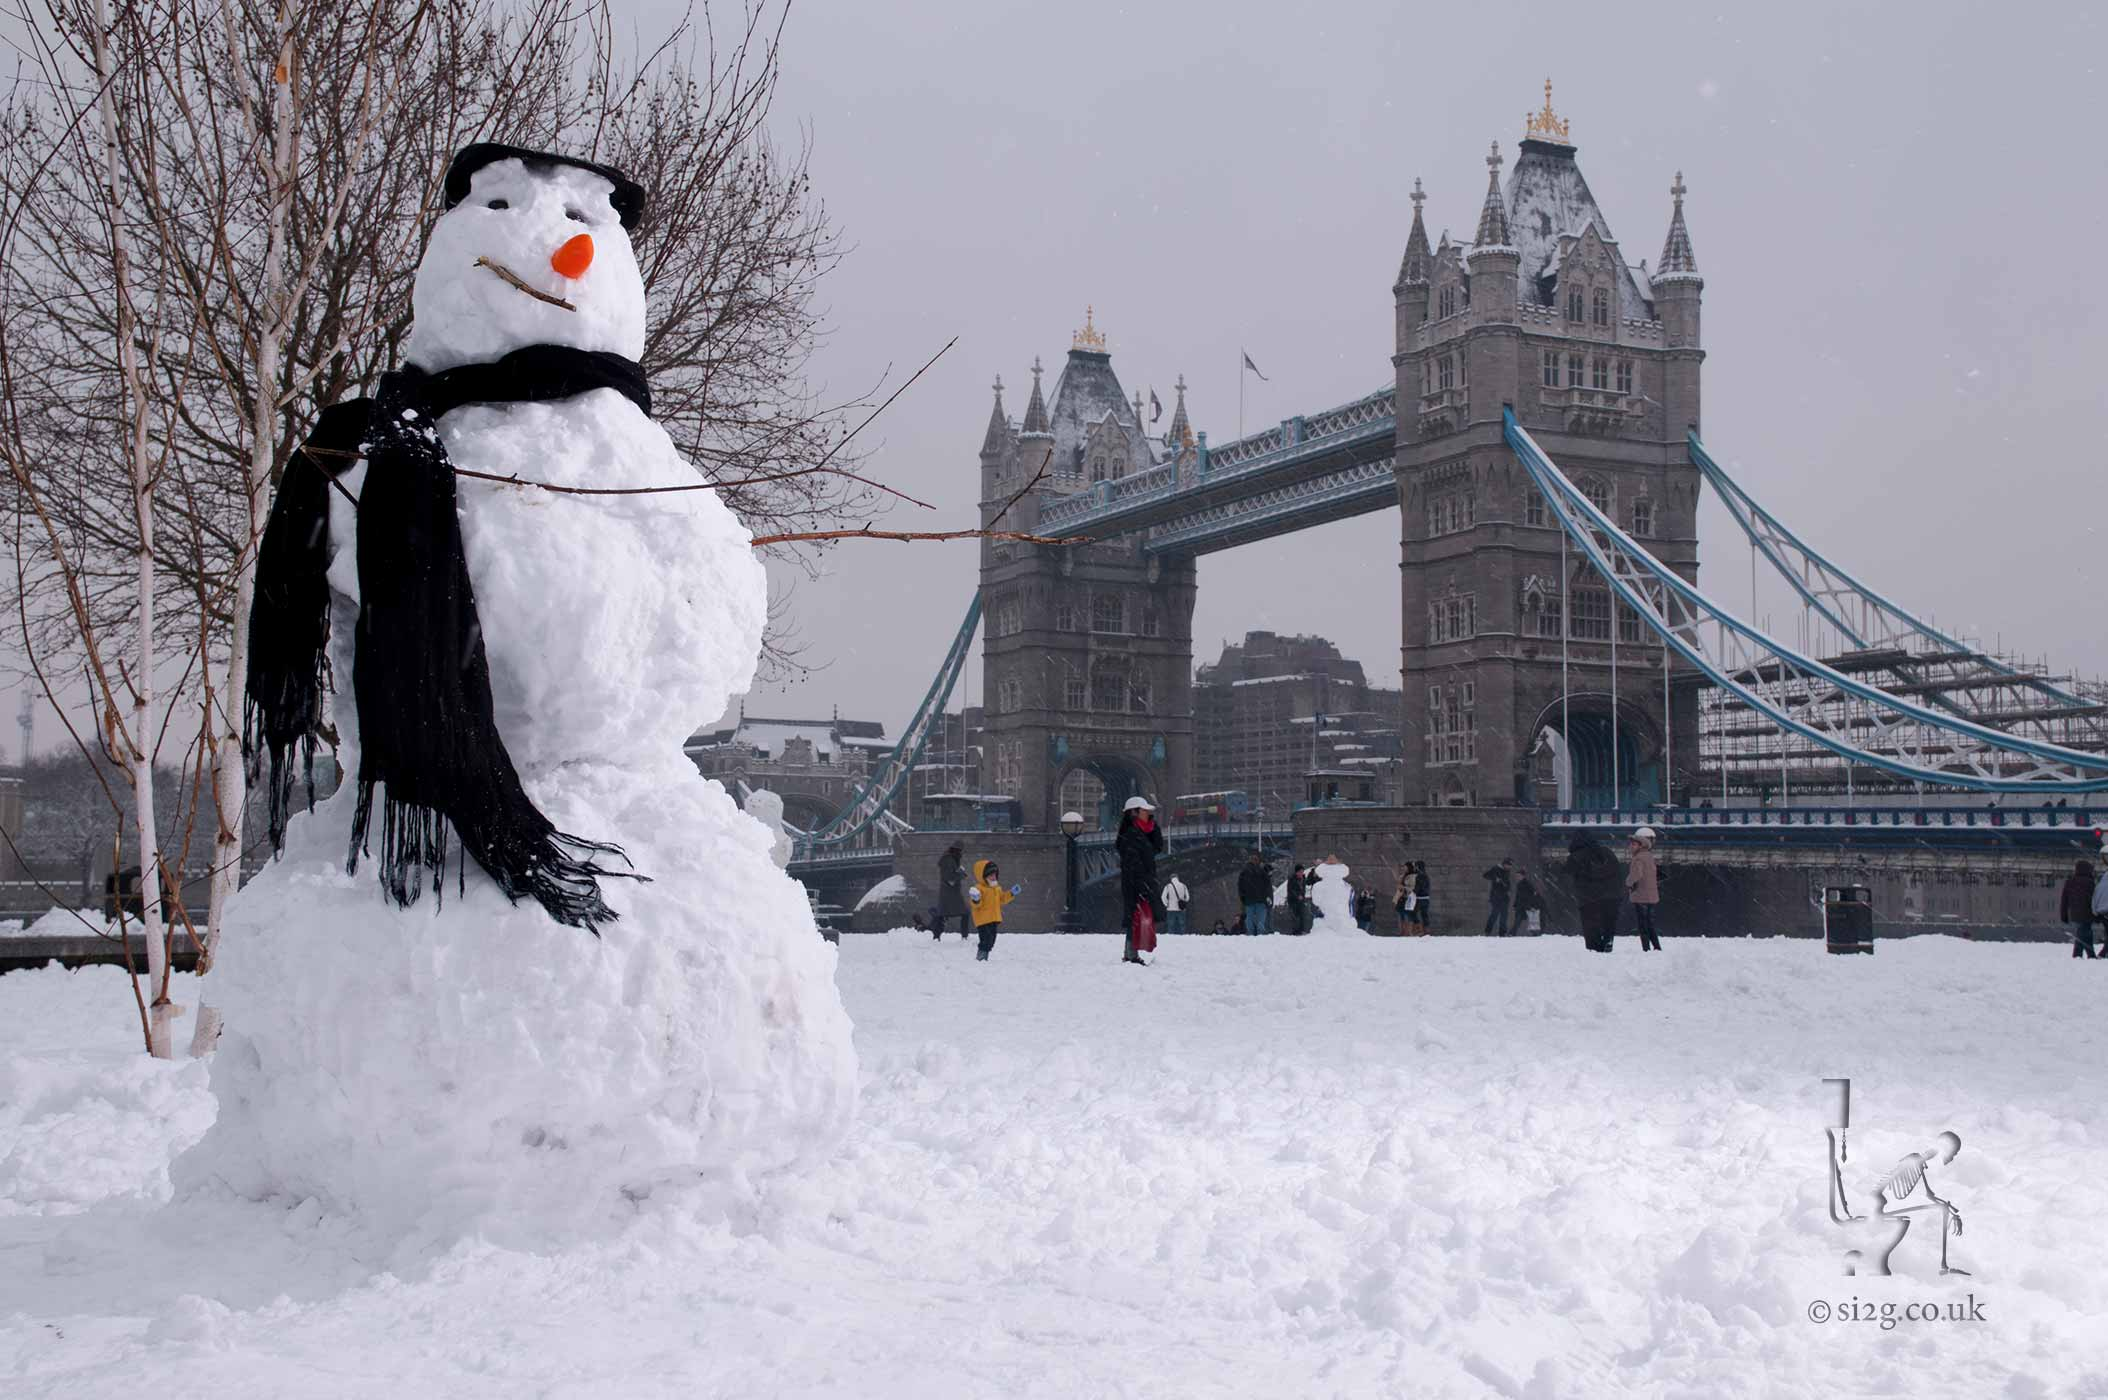 Snowman Tourist - One of our most popular photographs - a snowman visiting Tower Bridge in London.  This photo was taken on a rare occasion when the snow closed most of London.  The tubes were off and all but the most important roads were covered in deep snow.  We hiked for an hour and a half in knee-deep snow to reach Tower Bridge.